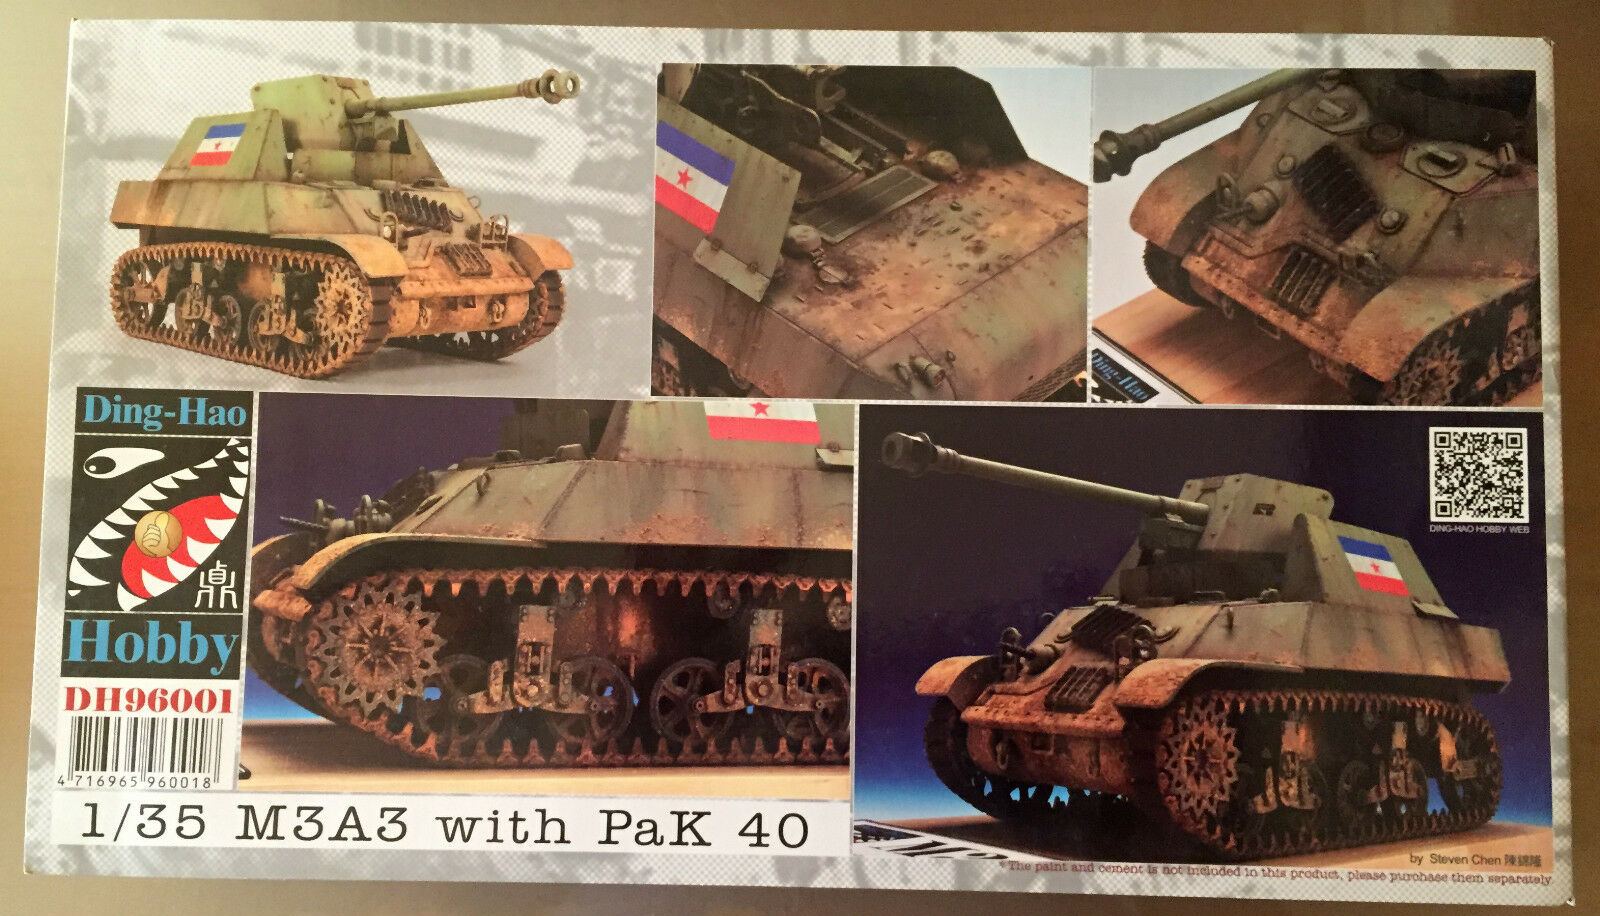 DING-HAO HOBBY DH96001 - 1 35 M3A3 with PaK 40 - NUOVO